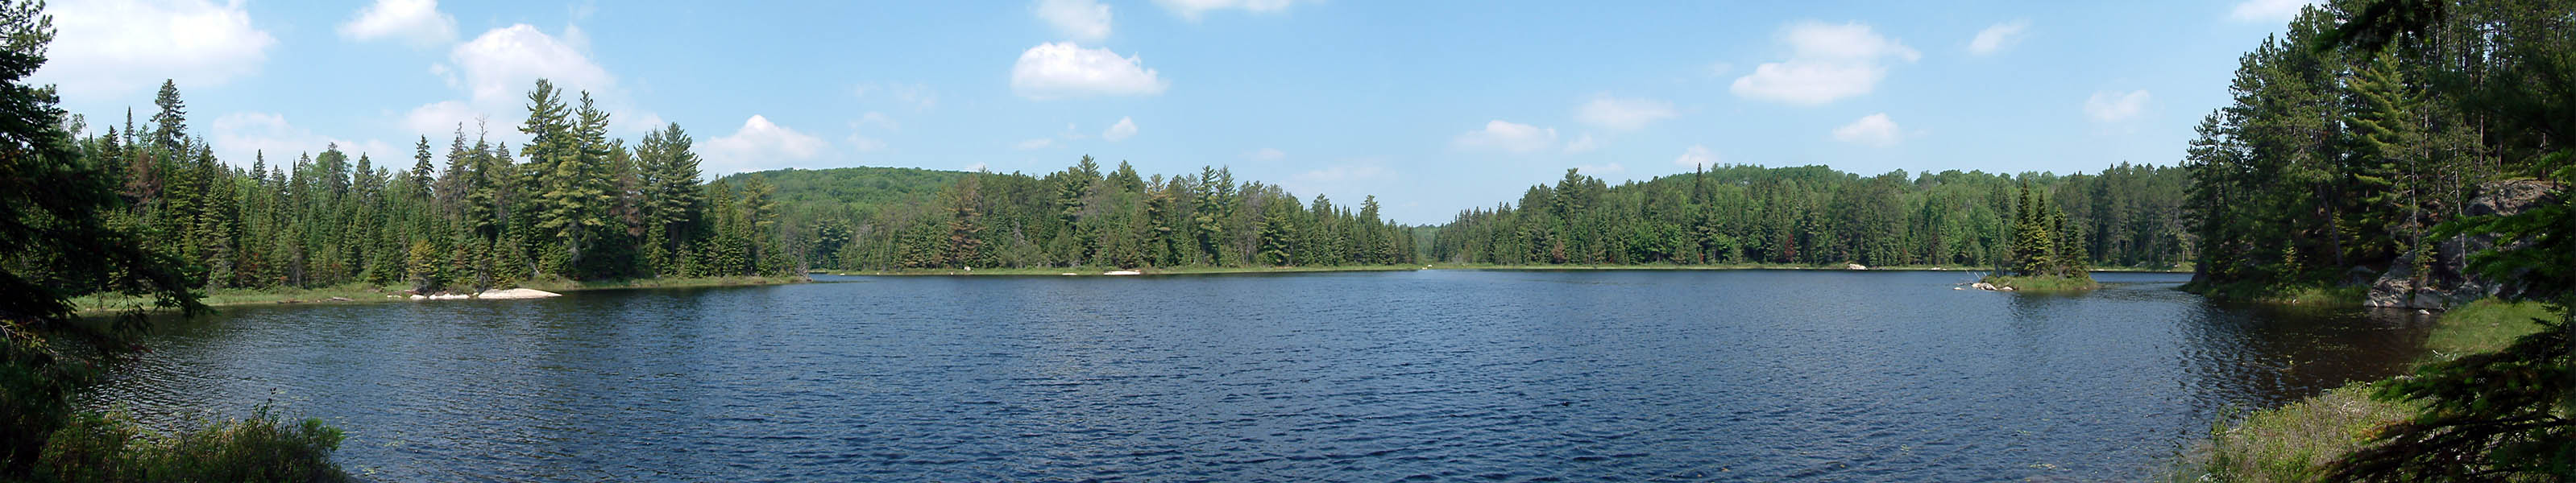 http://www.algonquinadventures.com/forums/WIT-2-Panorama.jpg